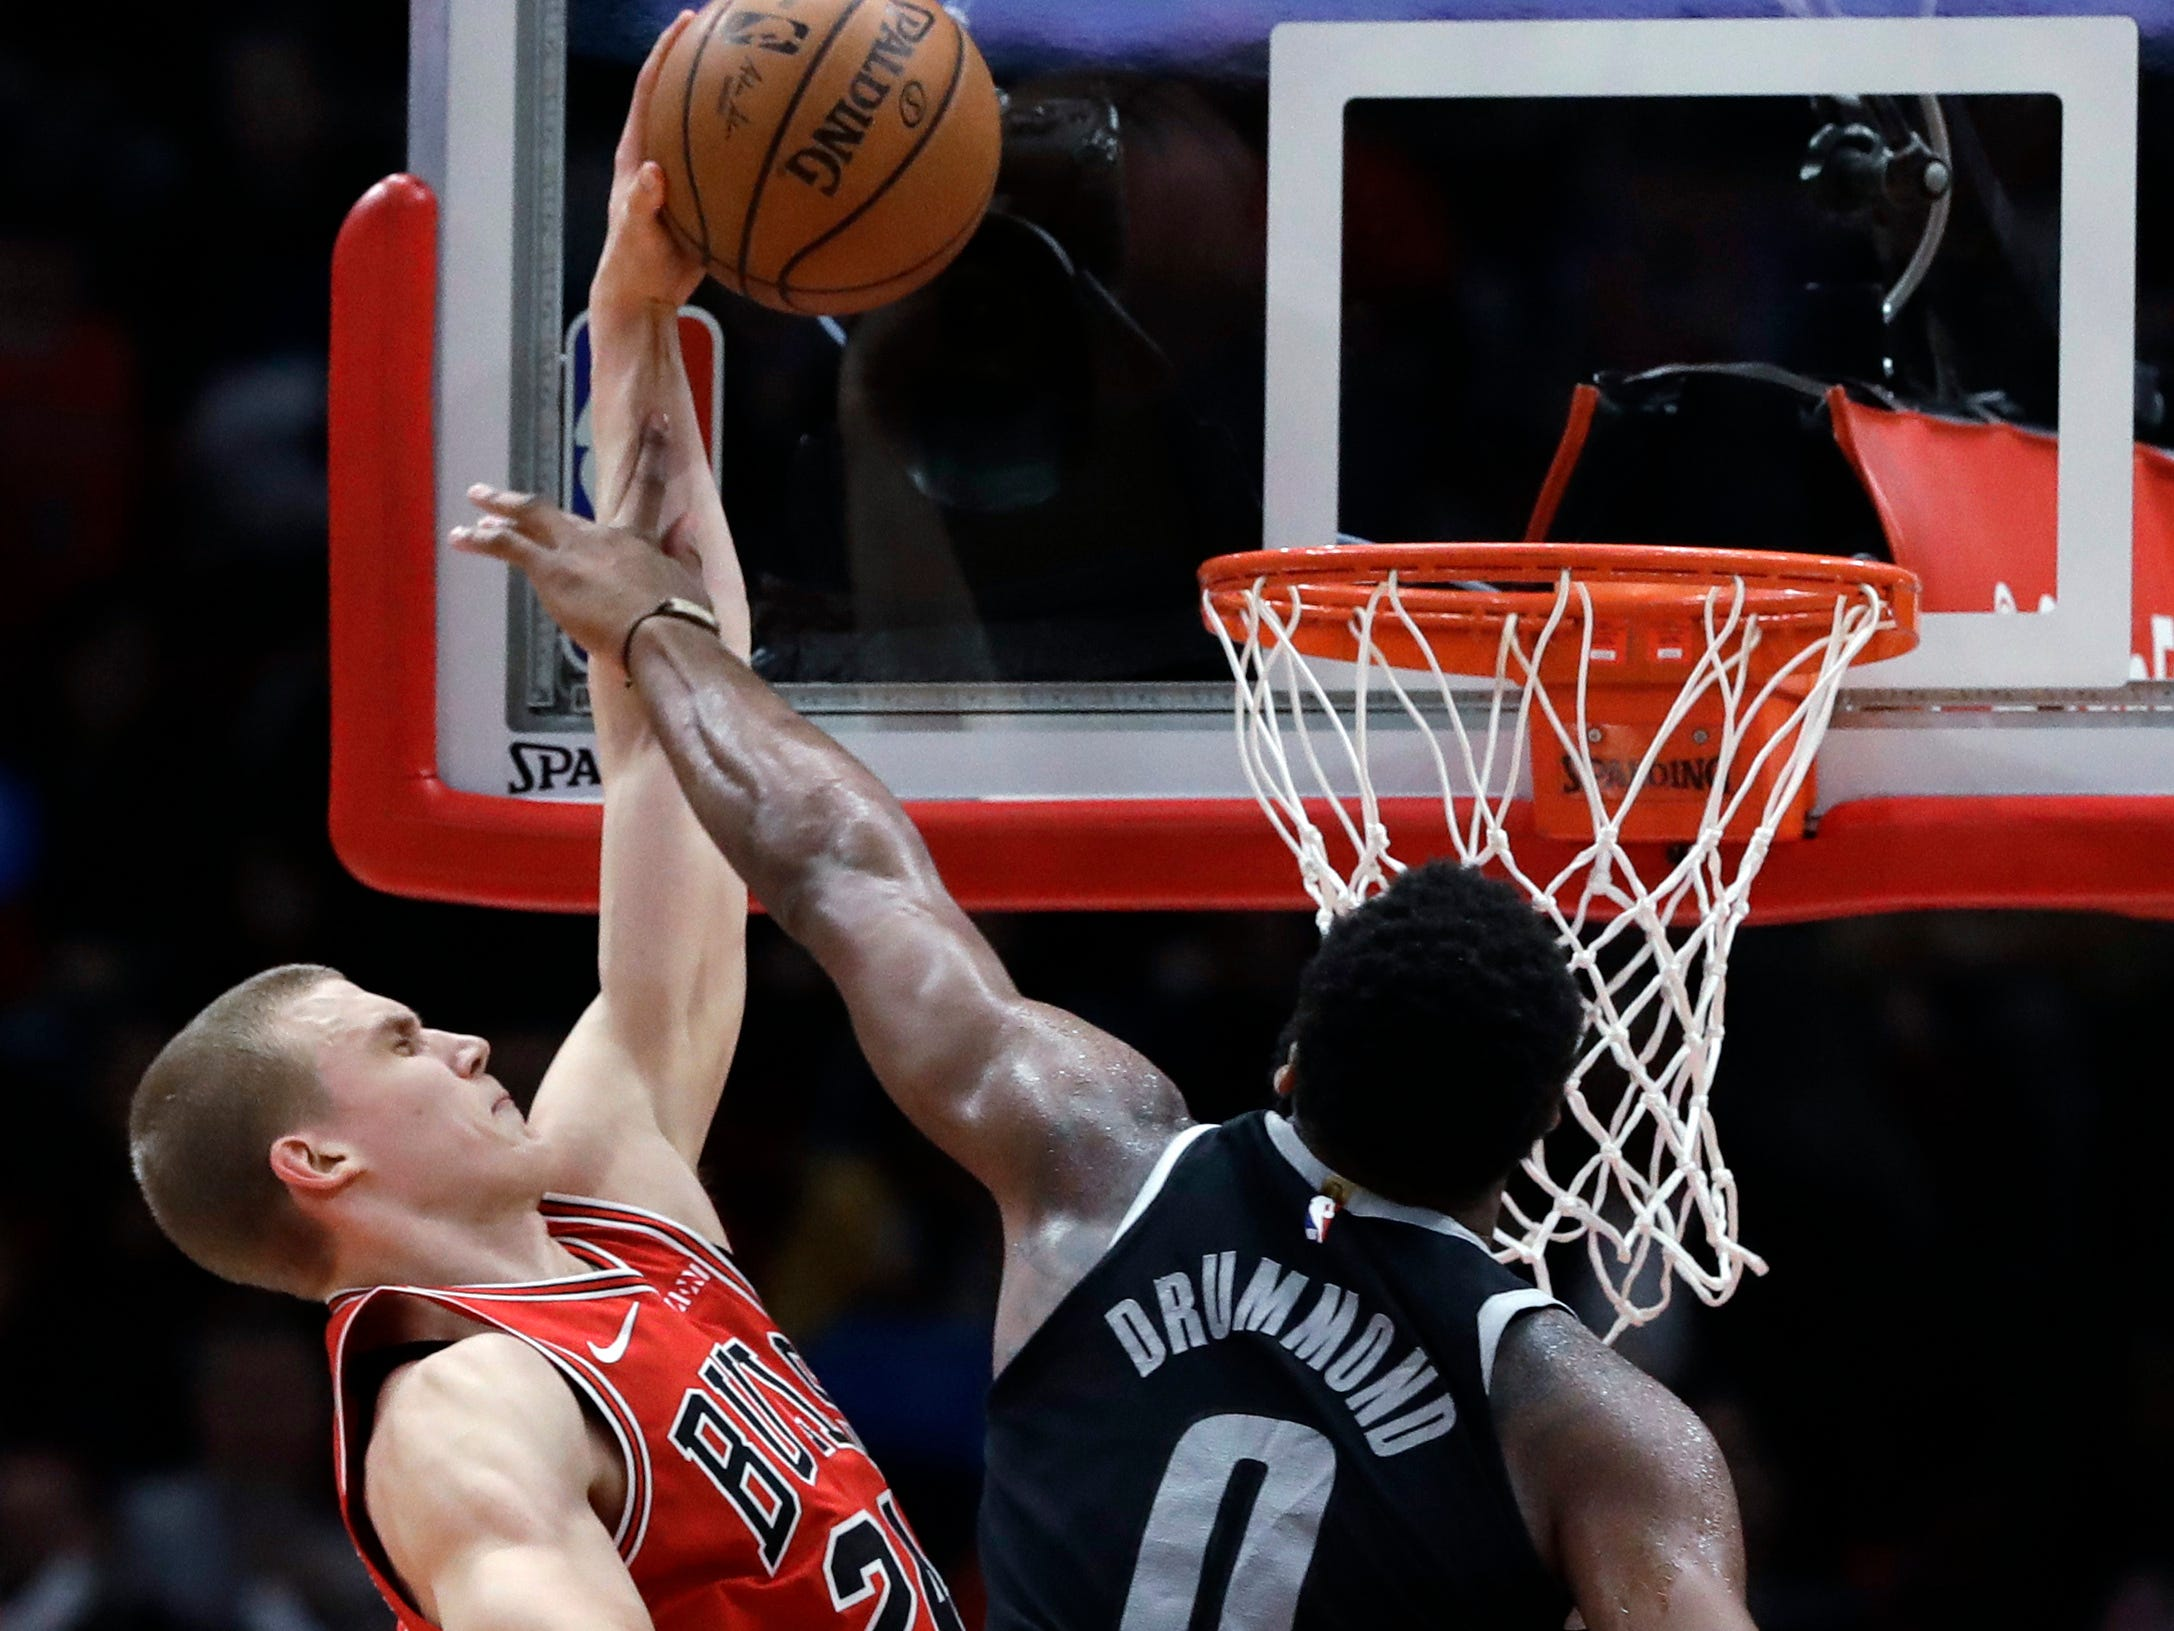 Chicago Bulls forward Lauri Markkanen, left, shoots against Detroit Pistons center Andre Drummond during the first half of an NBA basketball game.